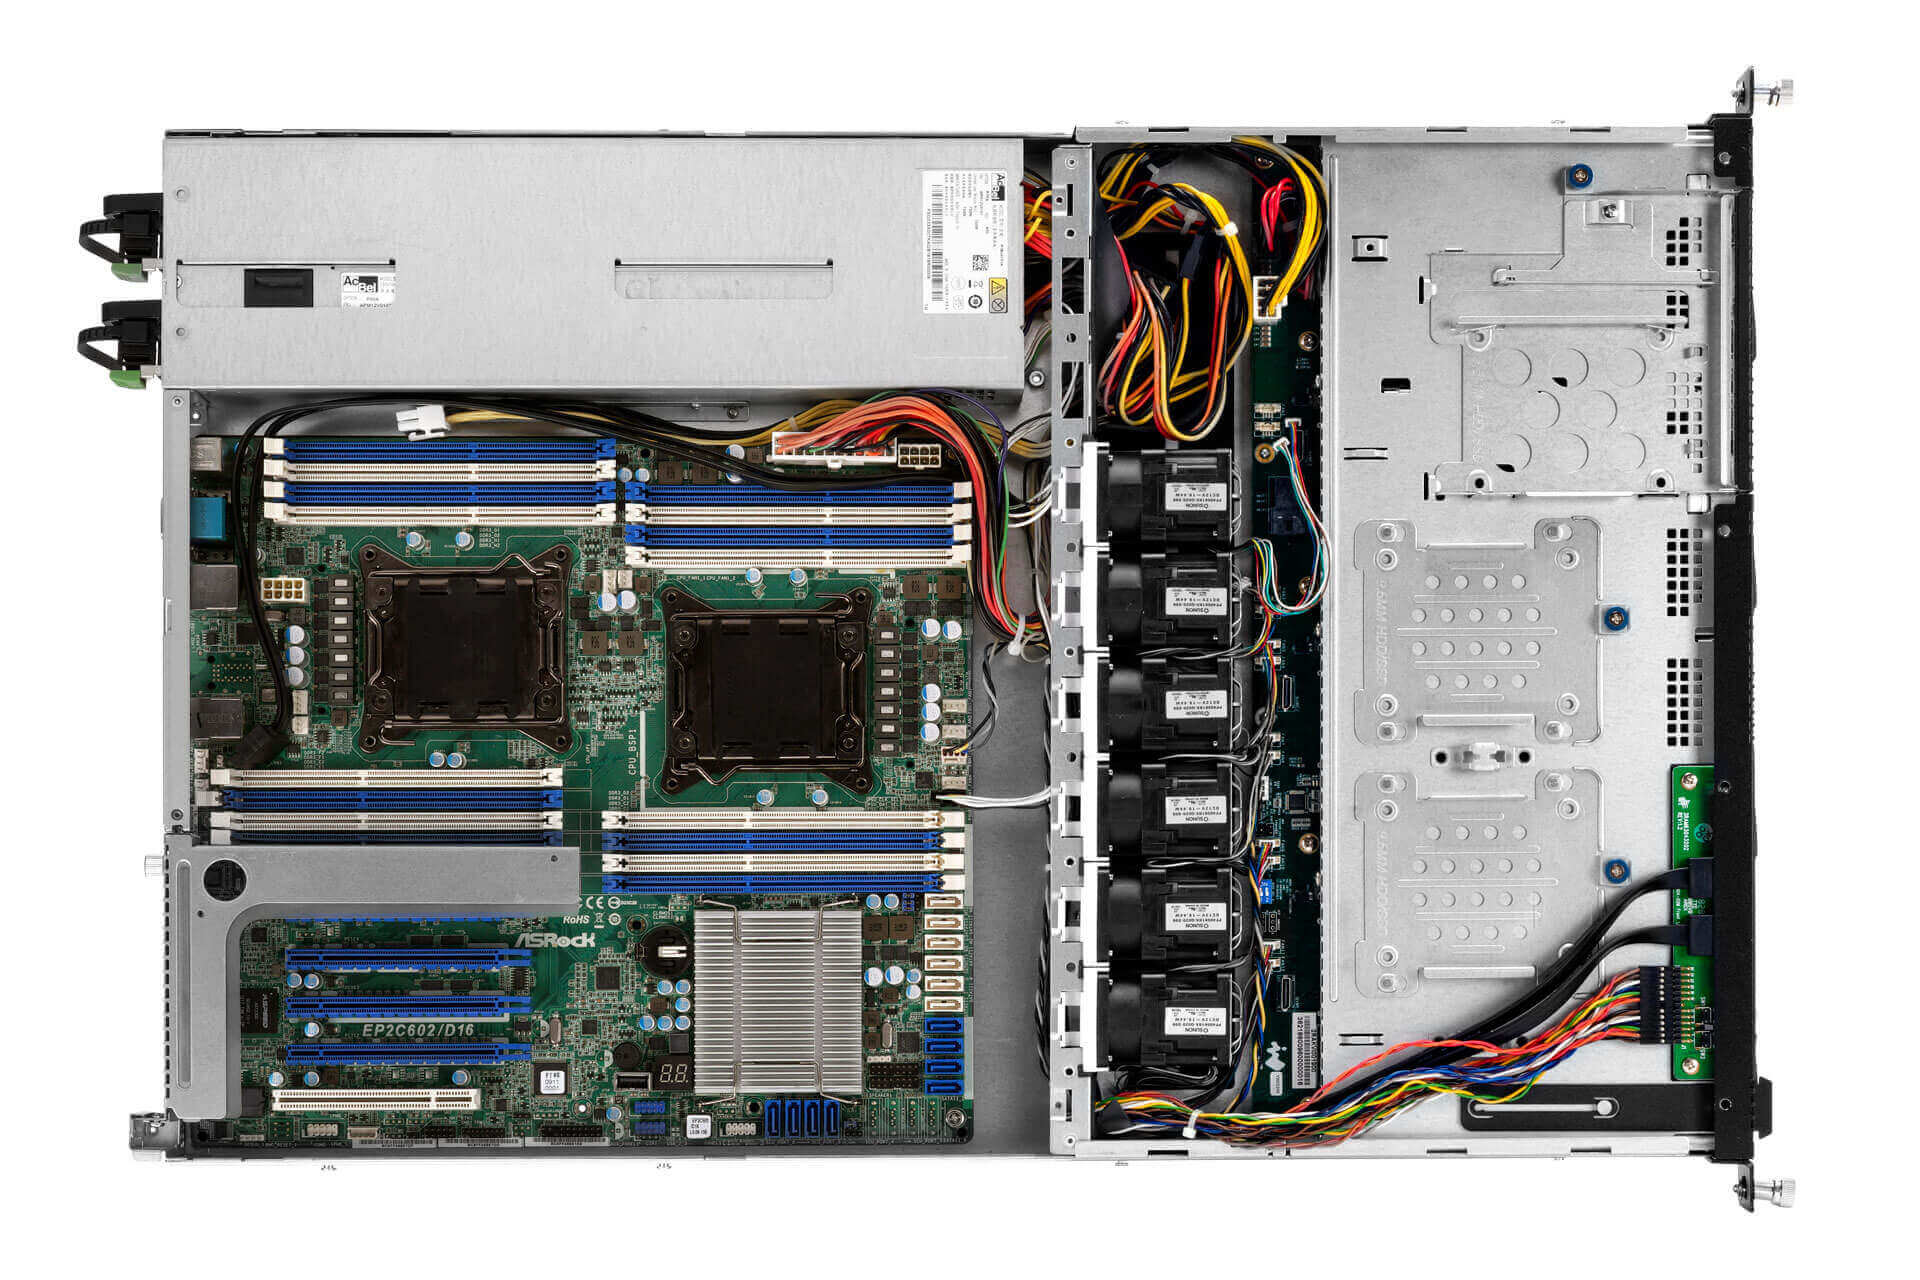 IW-RS104-07 - server system assembly